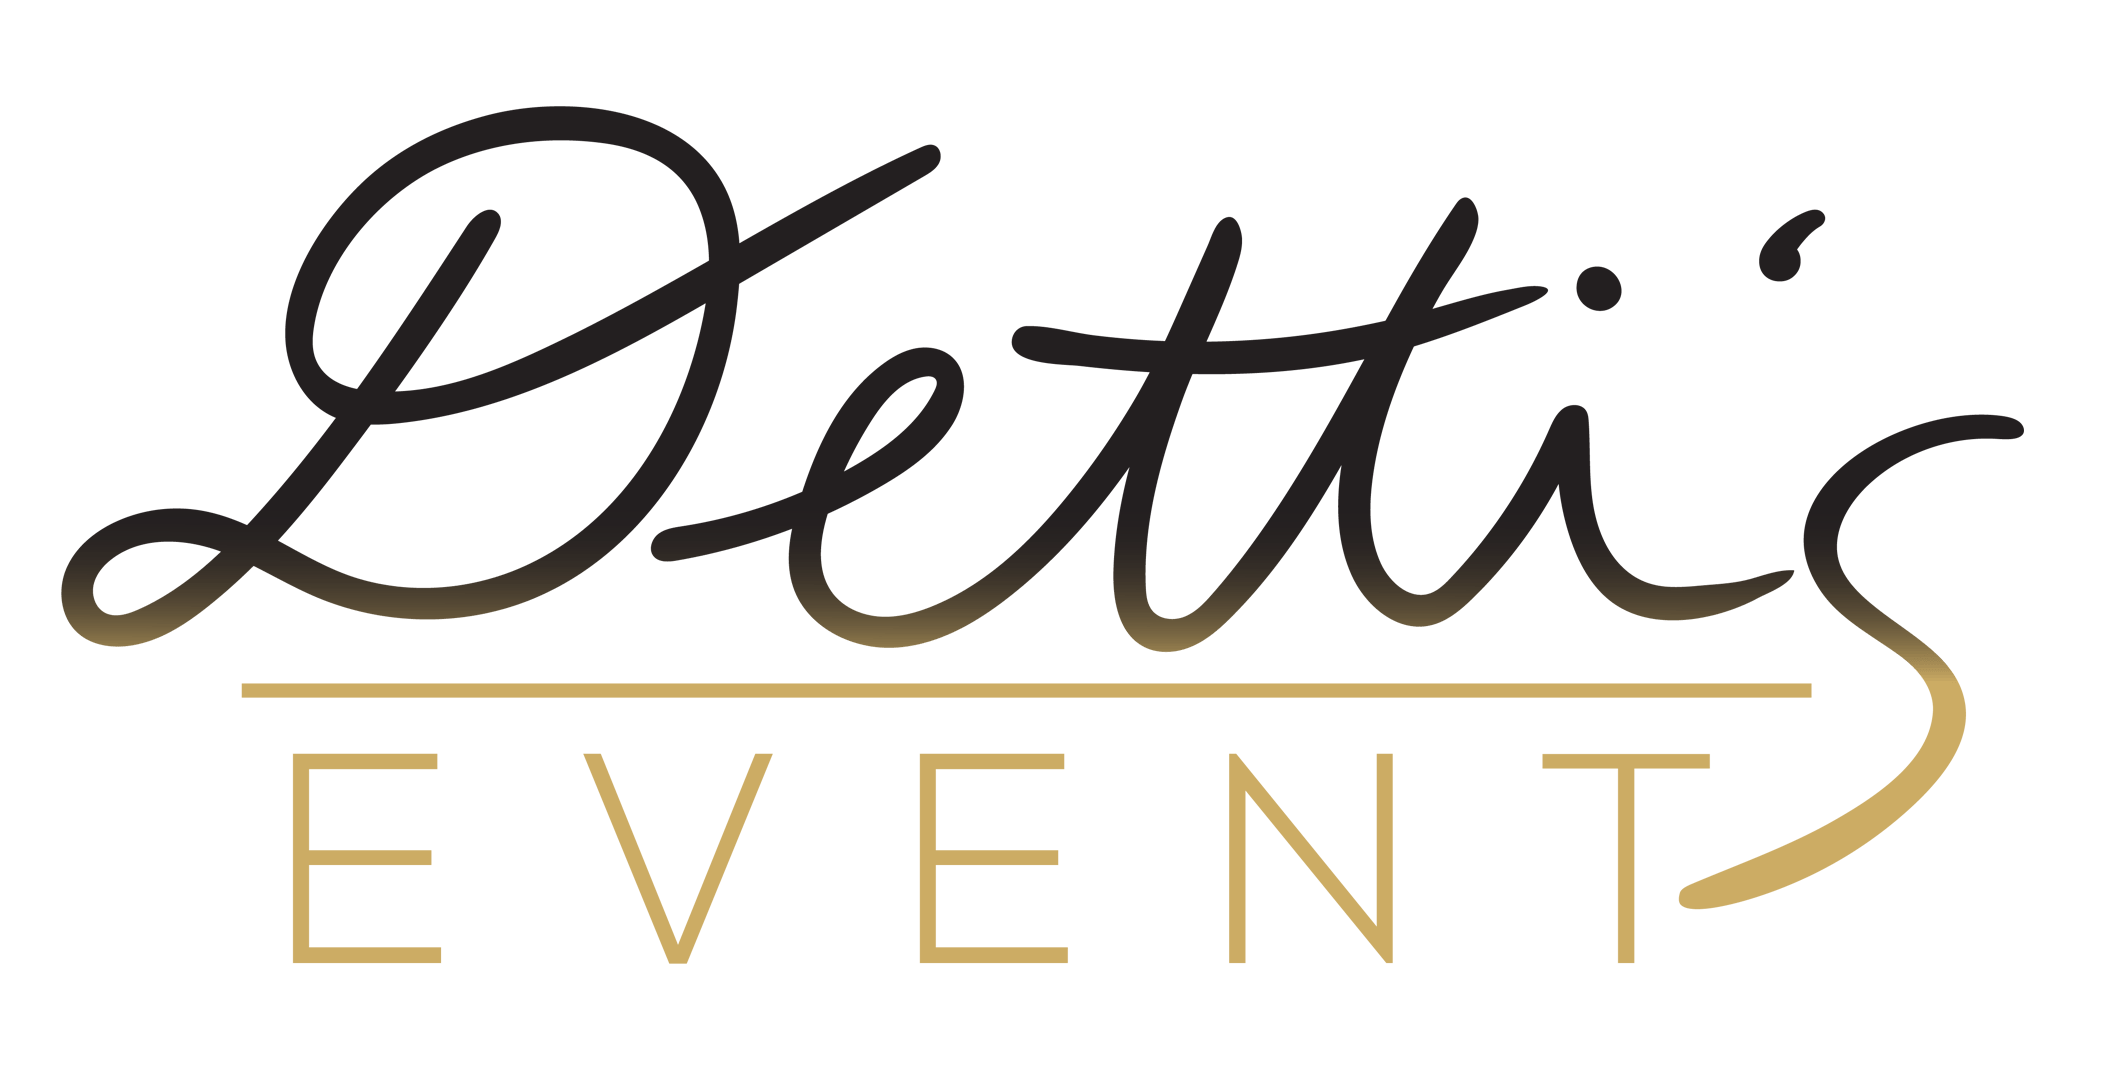 Detti's Events